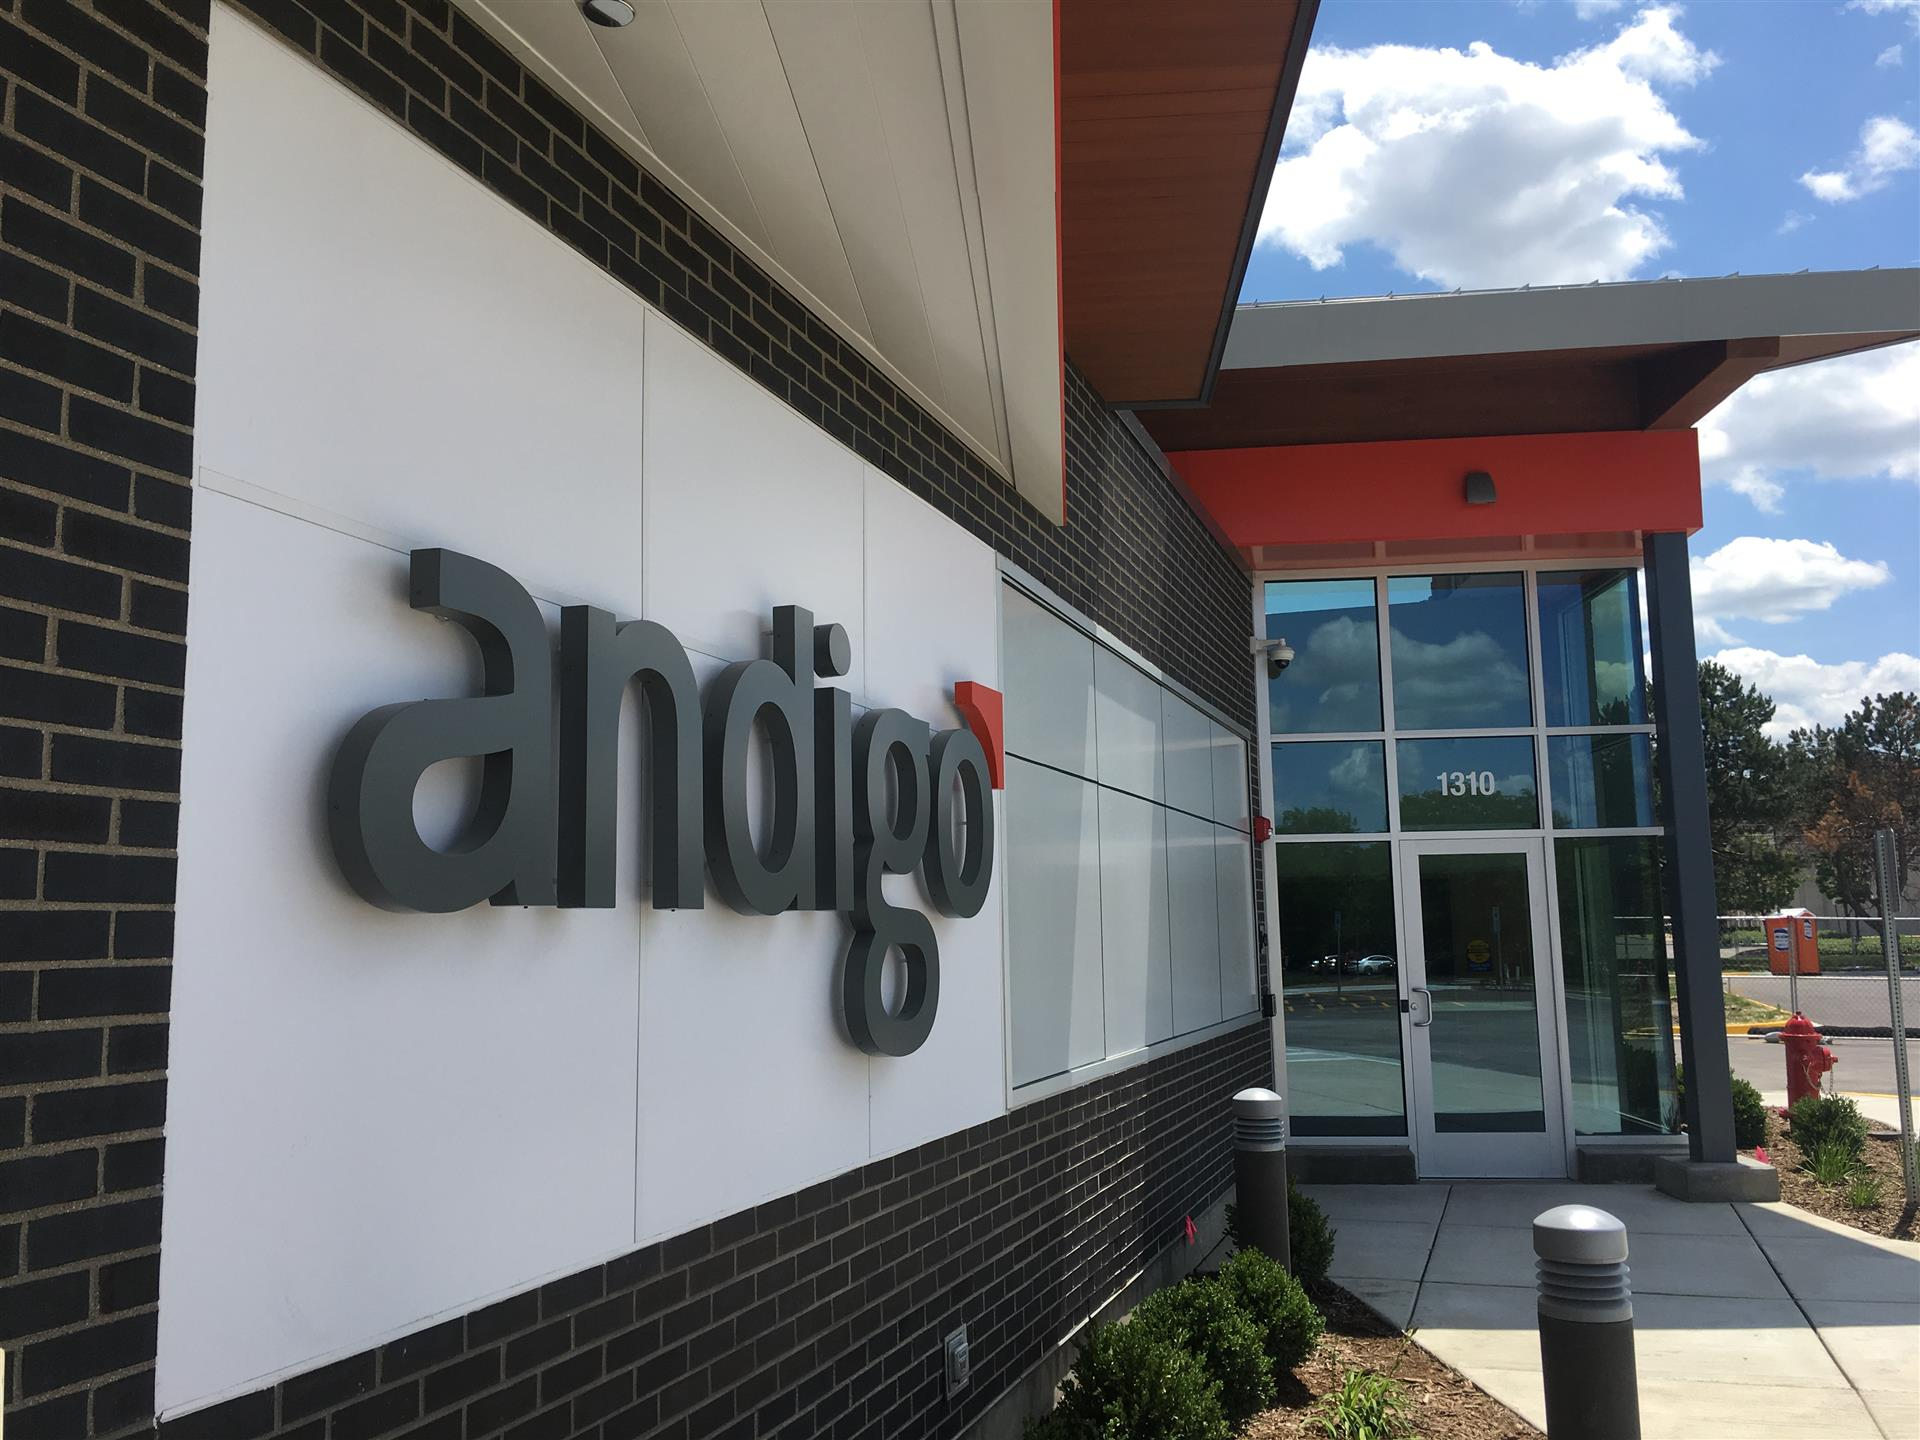 Andigo Credit Union Wall Sign